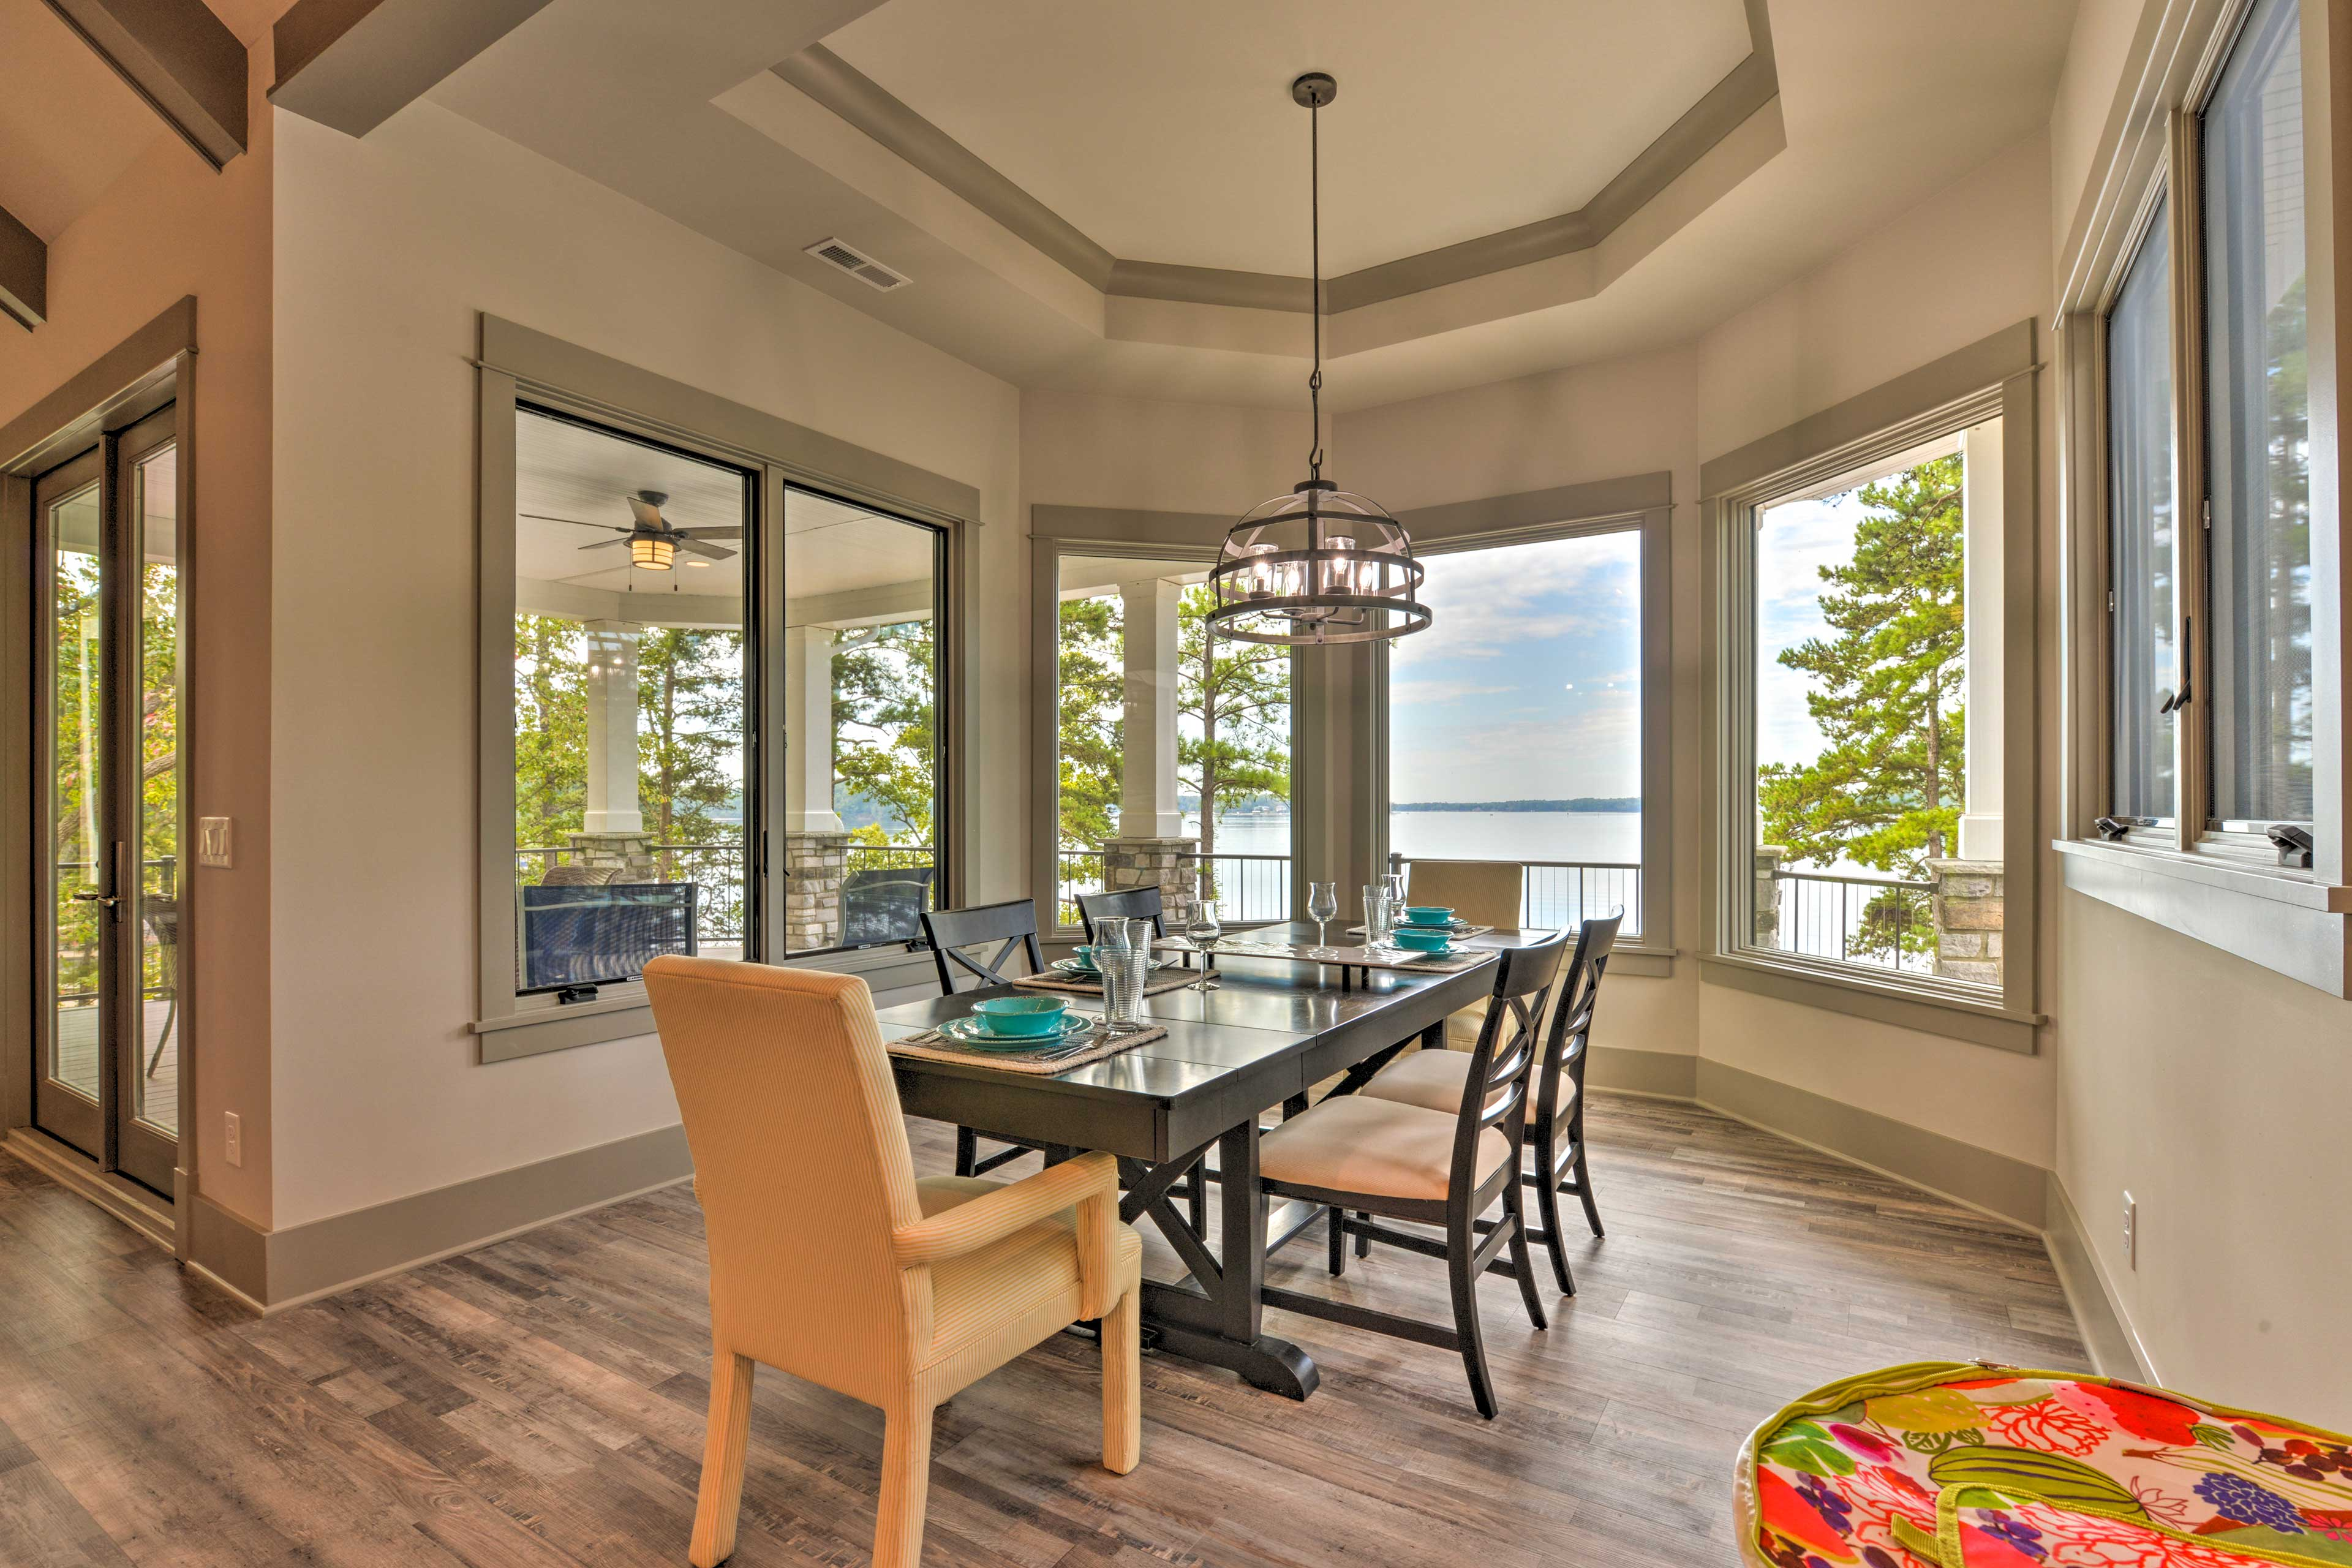 Gather around the 6-person dining table and admire the breathtaking views.